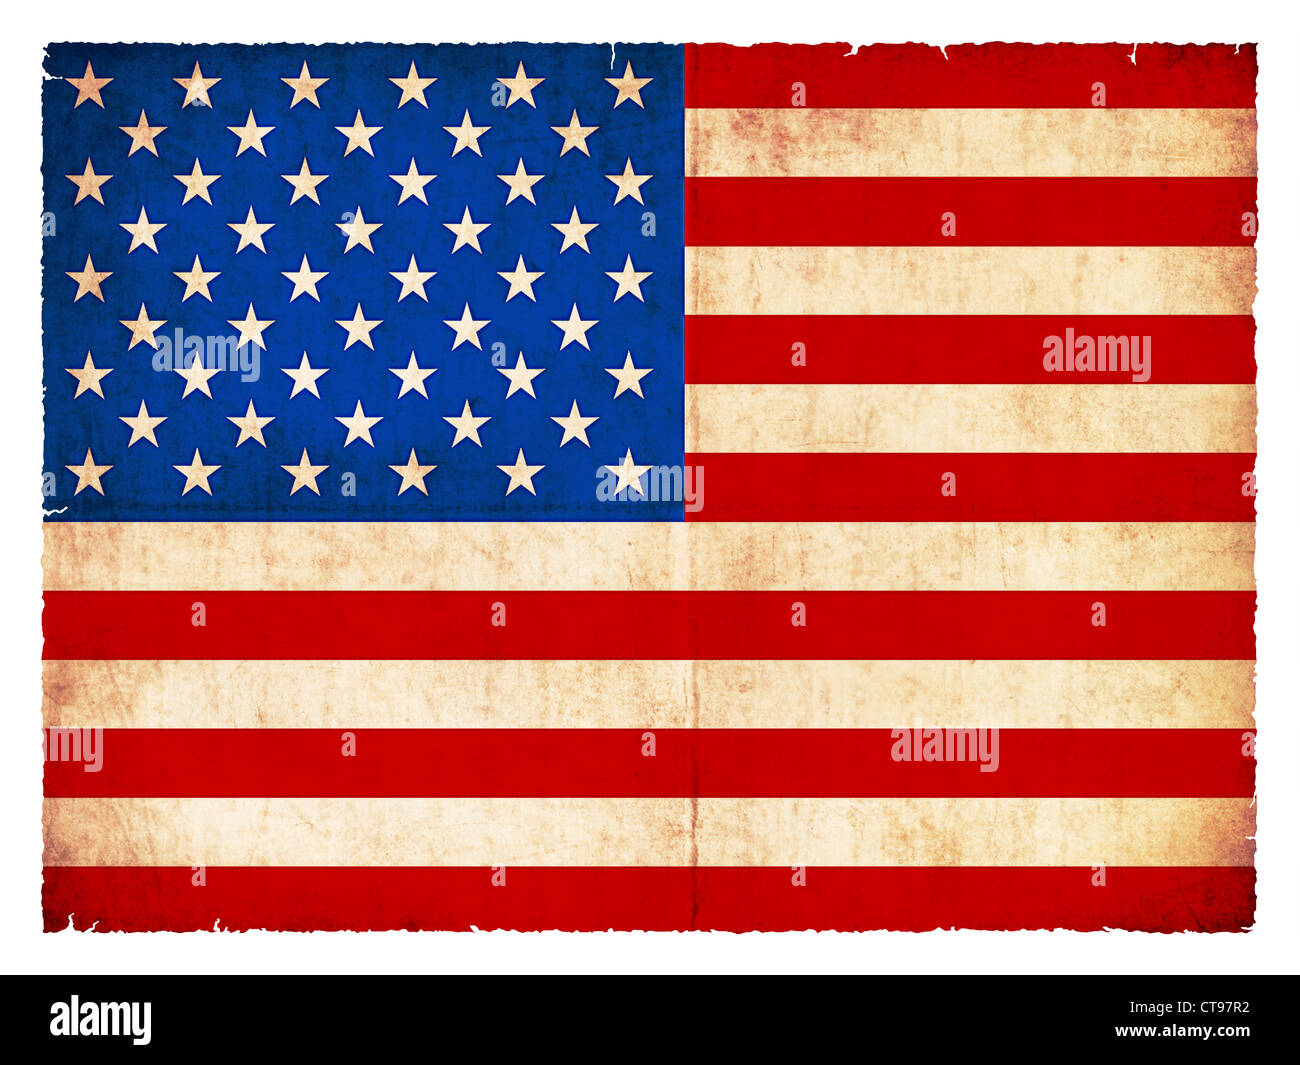 National Flag of USA created in grunge style - Stock Image